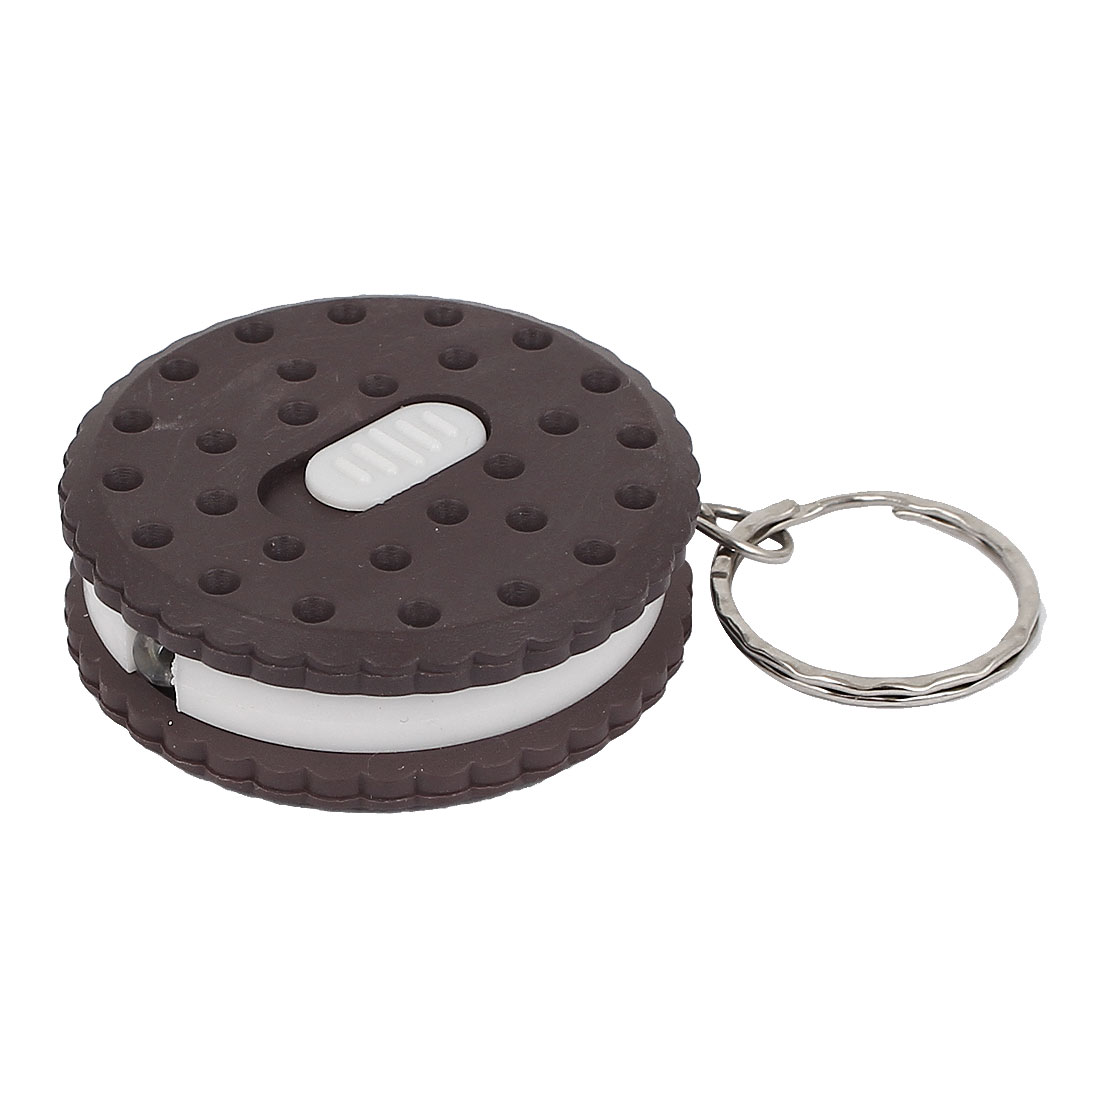 Plastic Chocolate Biscuit Flashlight Torch Pendant Keychain Keyring Key Holder